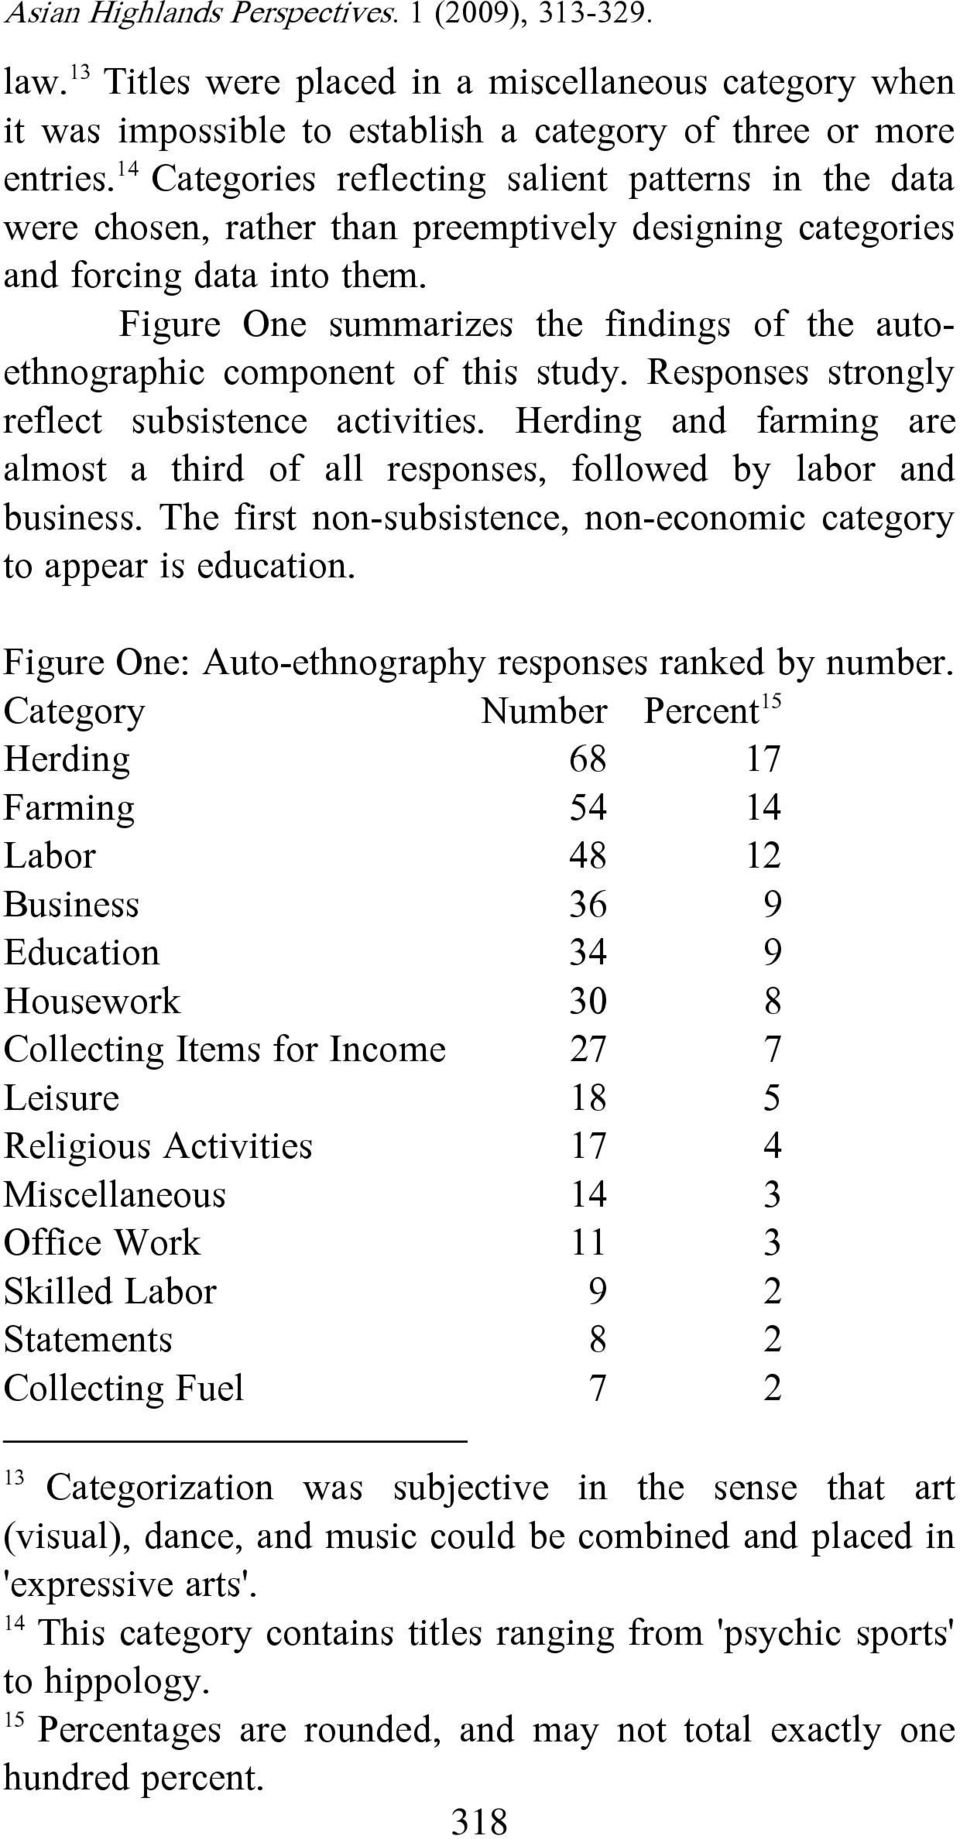 Figure One summarizes the findings of the autoethnographic component of this study. Responses strongly reflect subsistence activities.